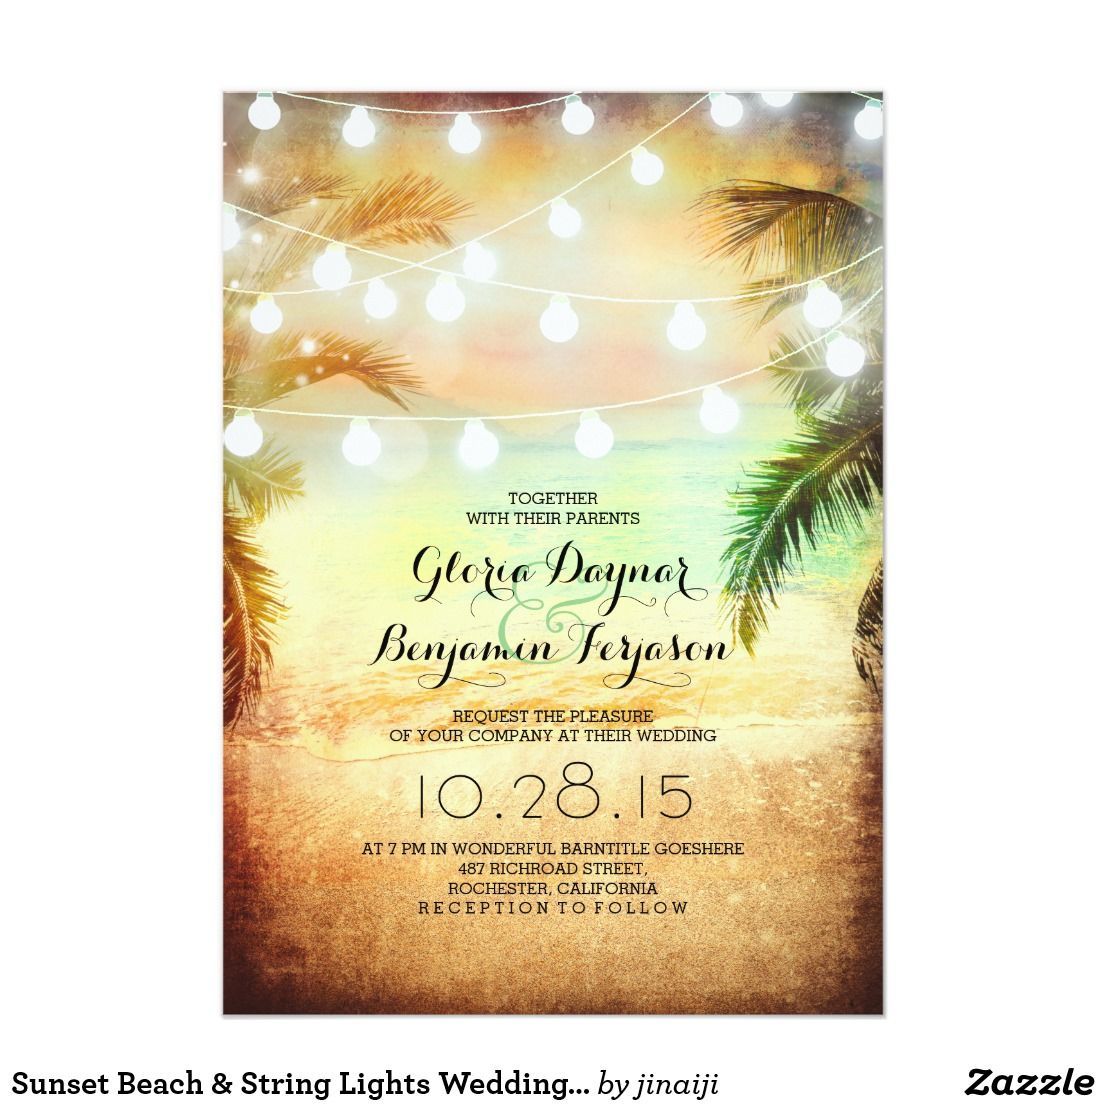 Sunset Beach & String Lights Wedding Invitation | Beach wedding ...